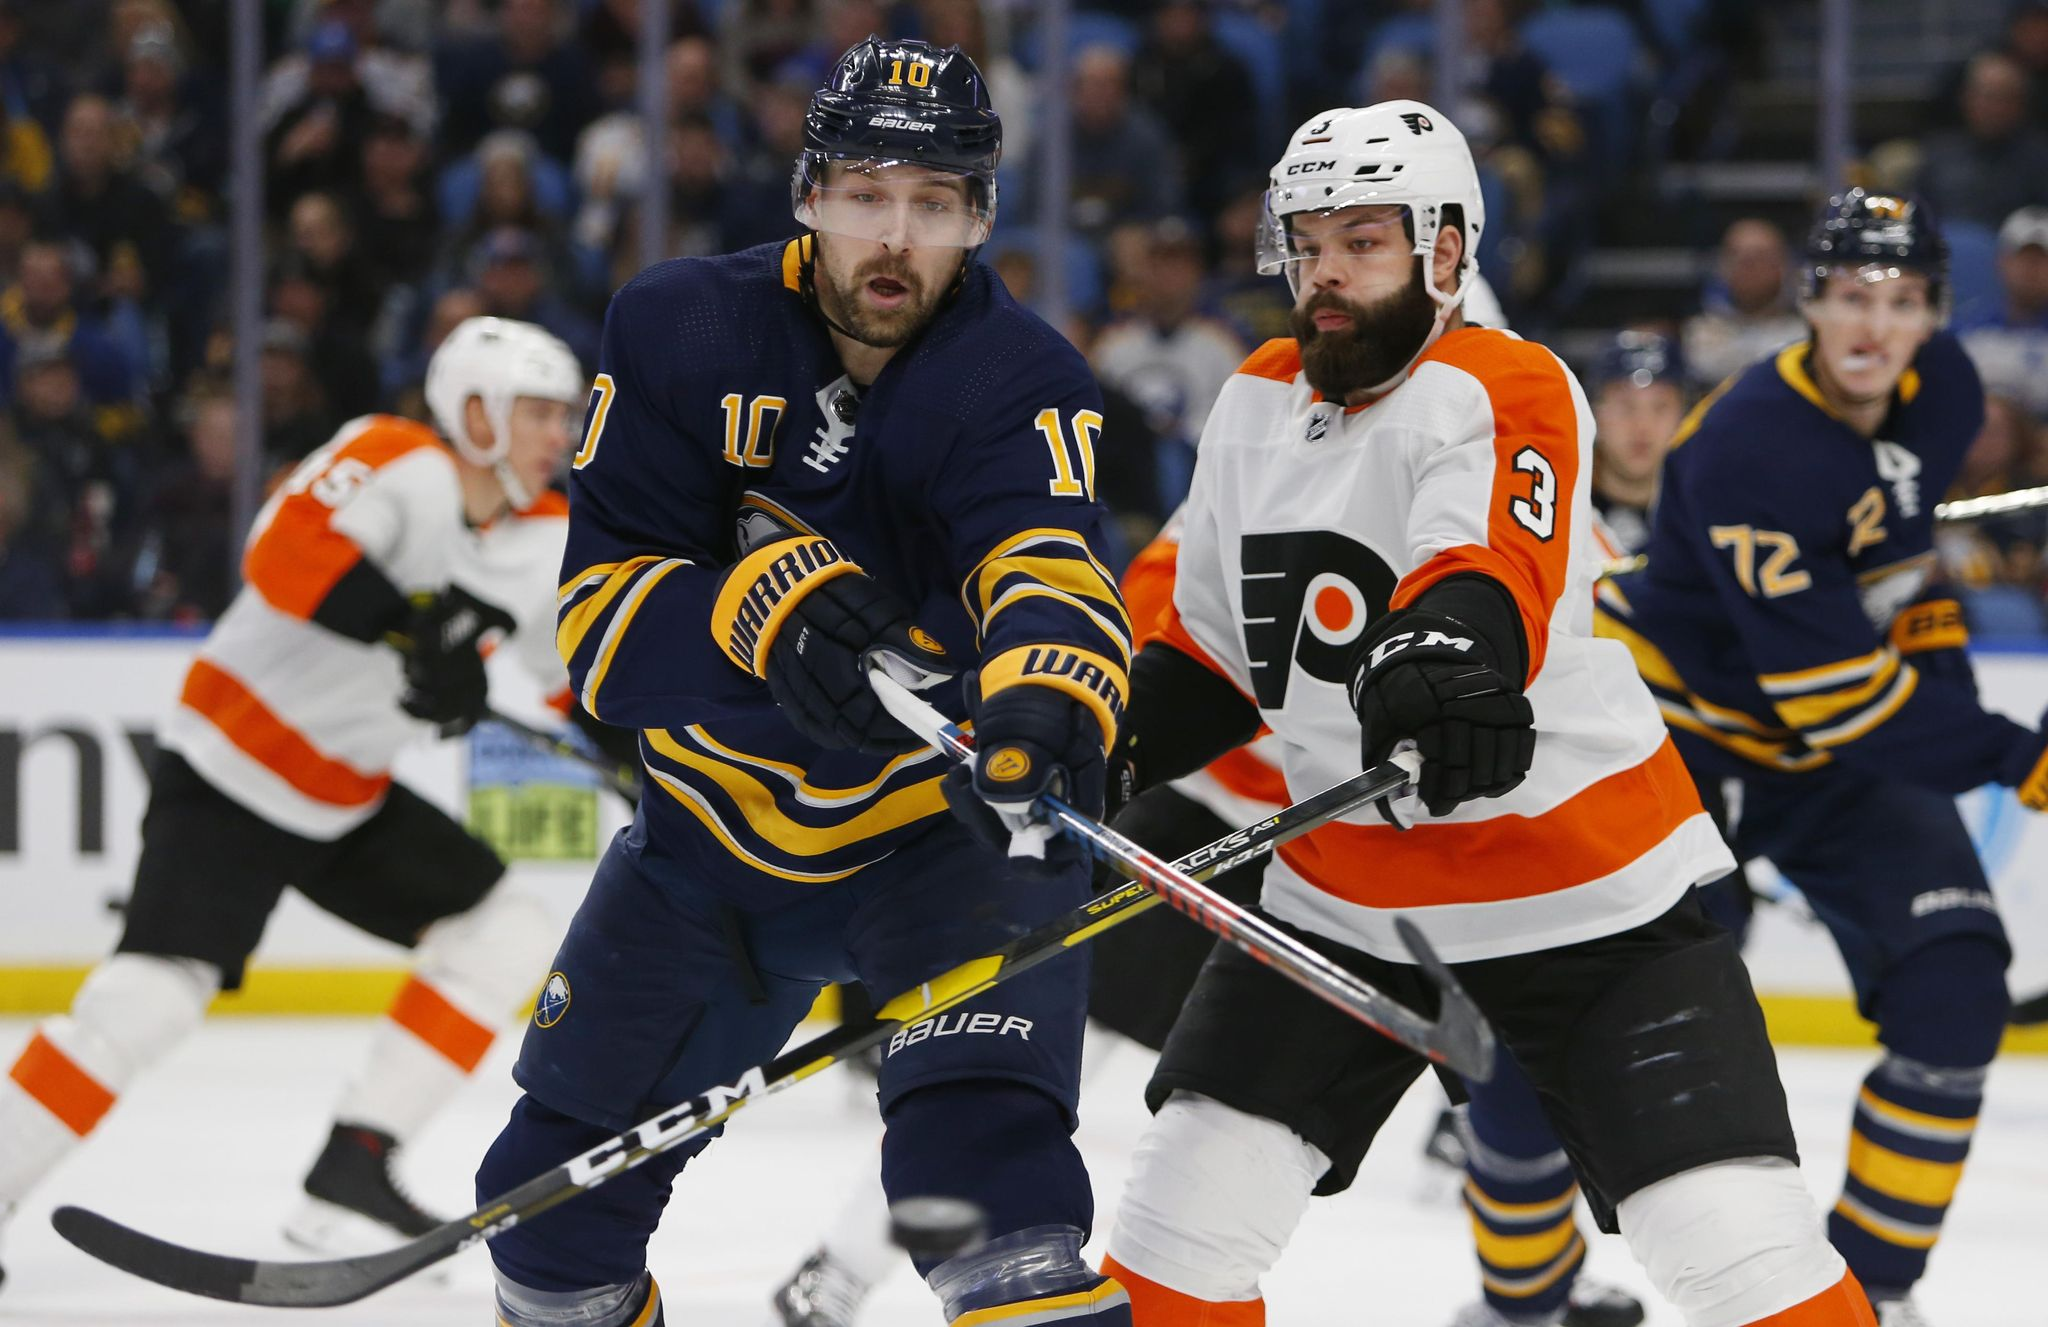 Flyers_sabres_hockey_20974_s2048x1327